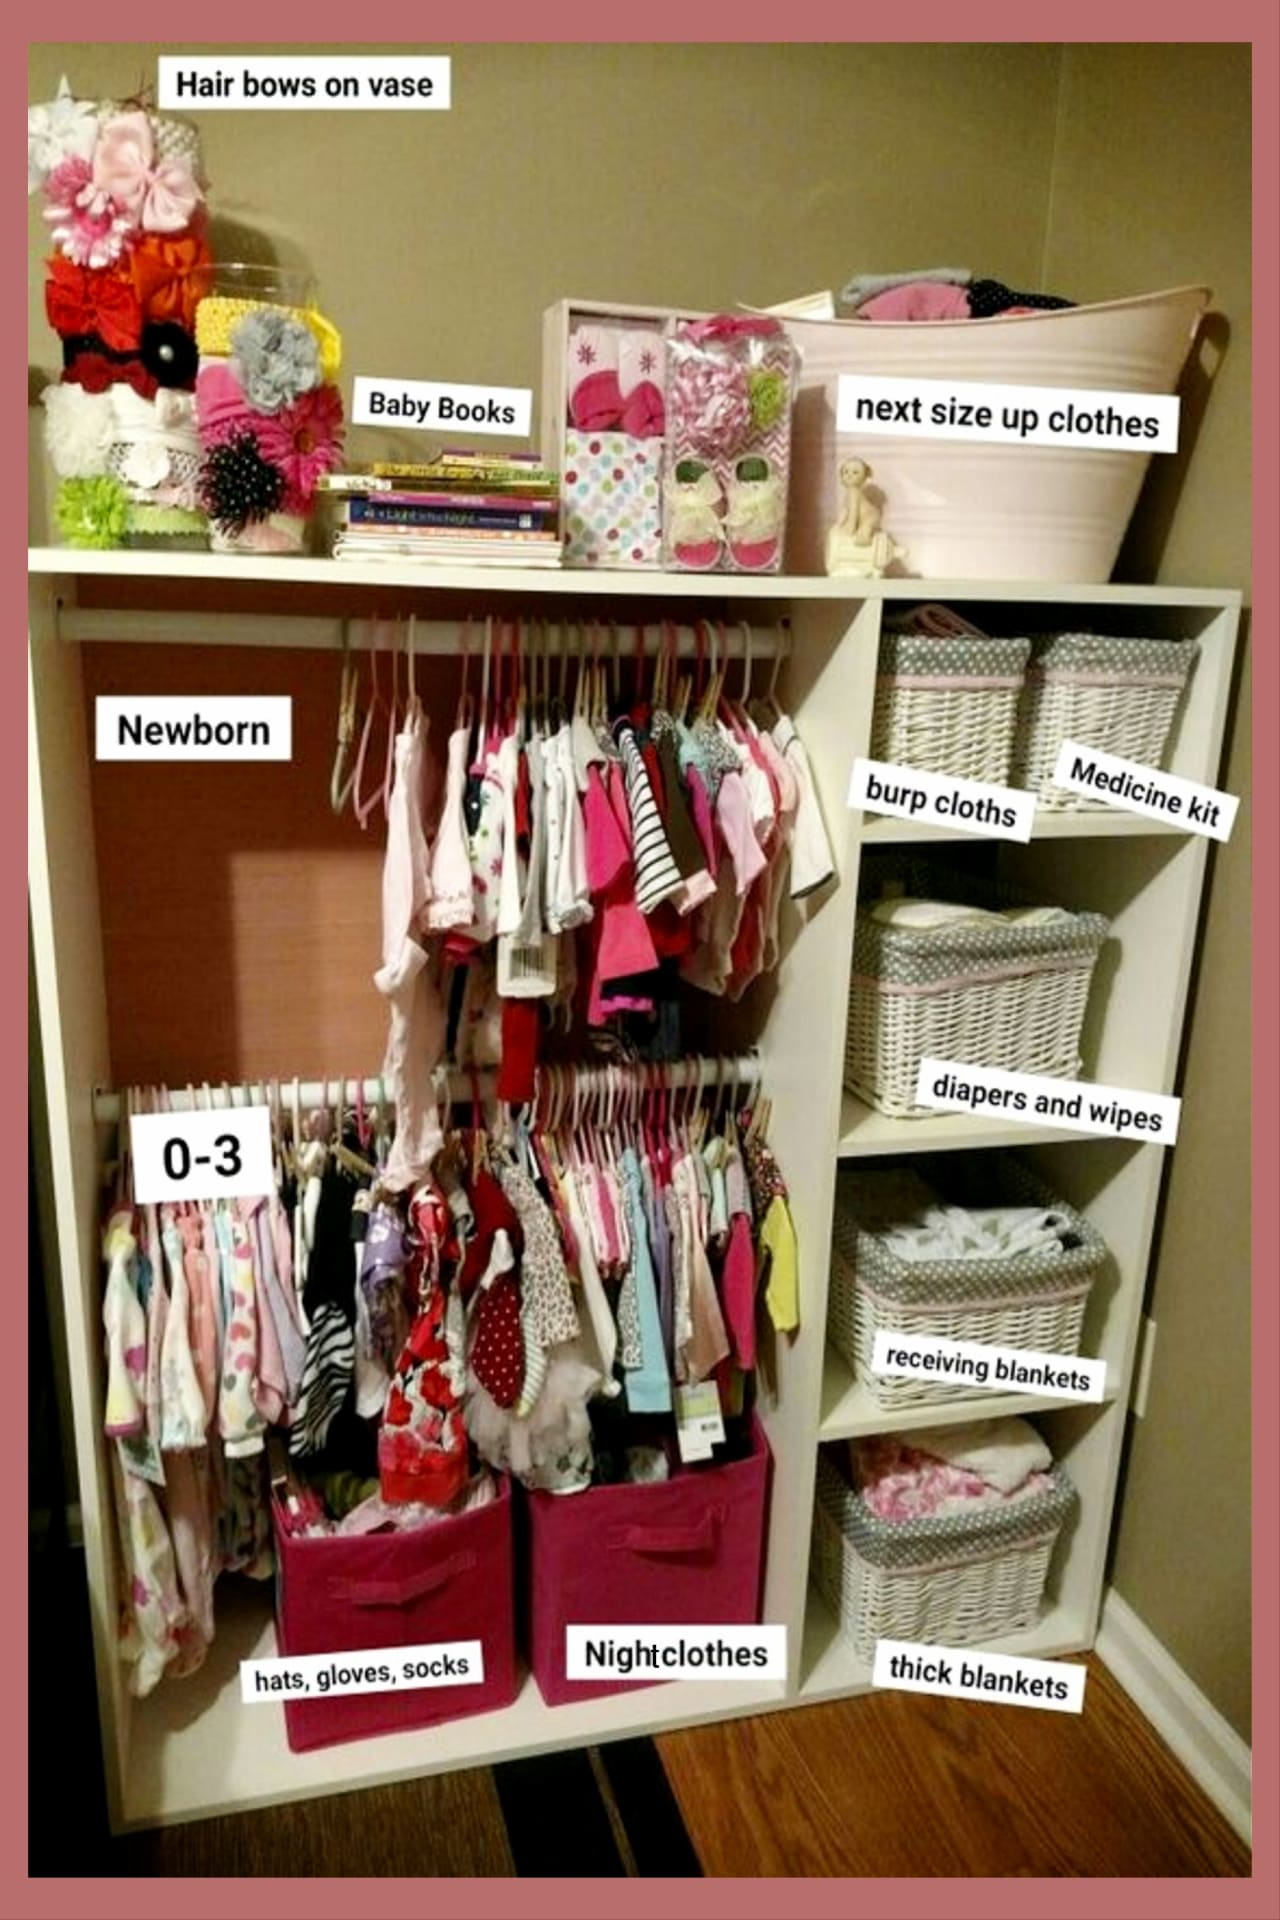 Creative storage solutions for a small baby room without a closet - no closet solutions and more brillain organization ideas for the home in the nursery